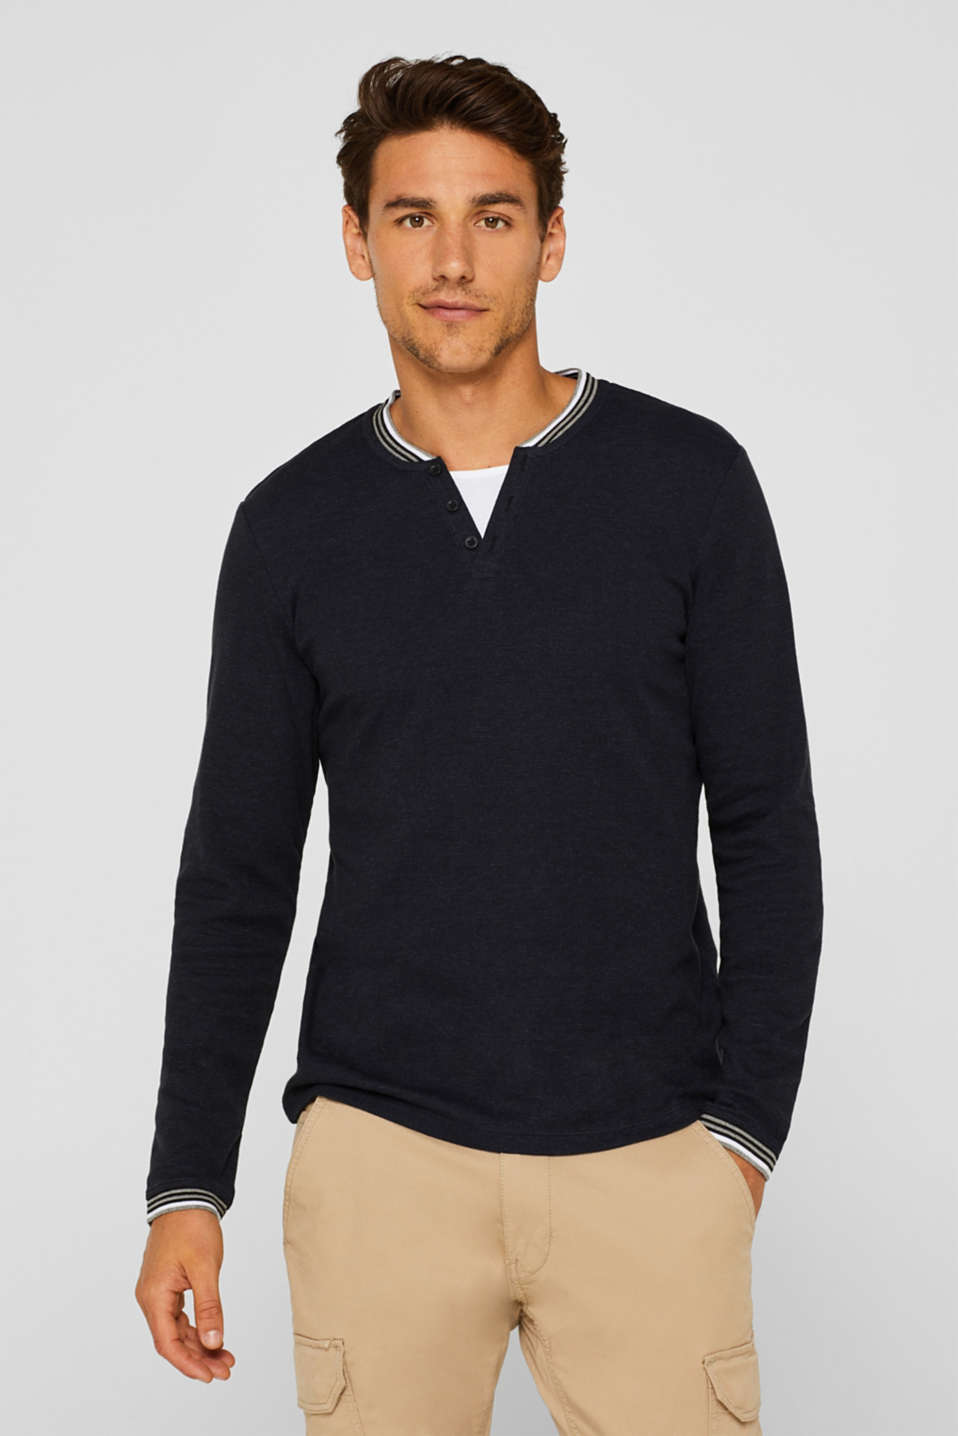 Esprit - Long sleeve jersey top in a layered look